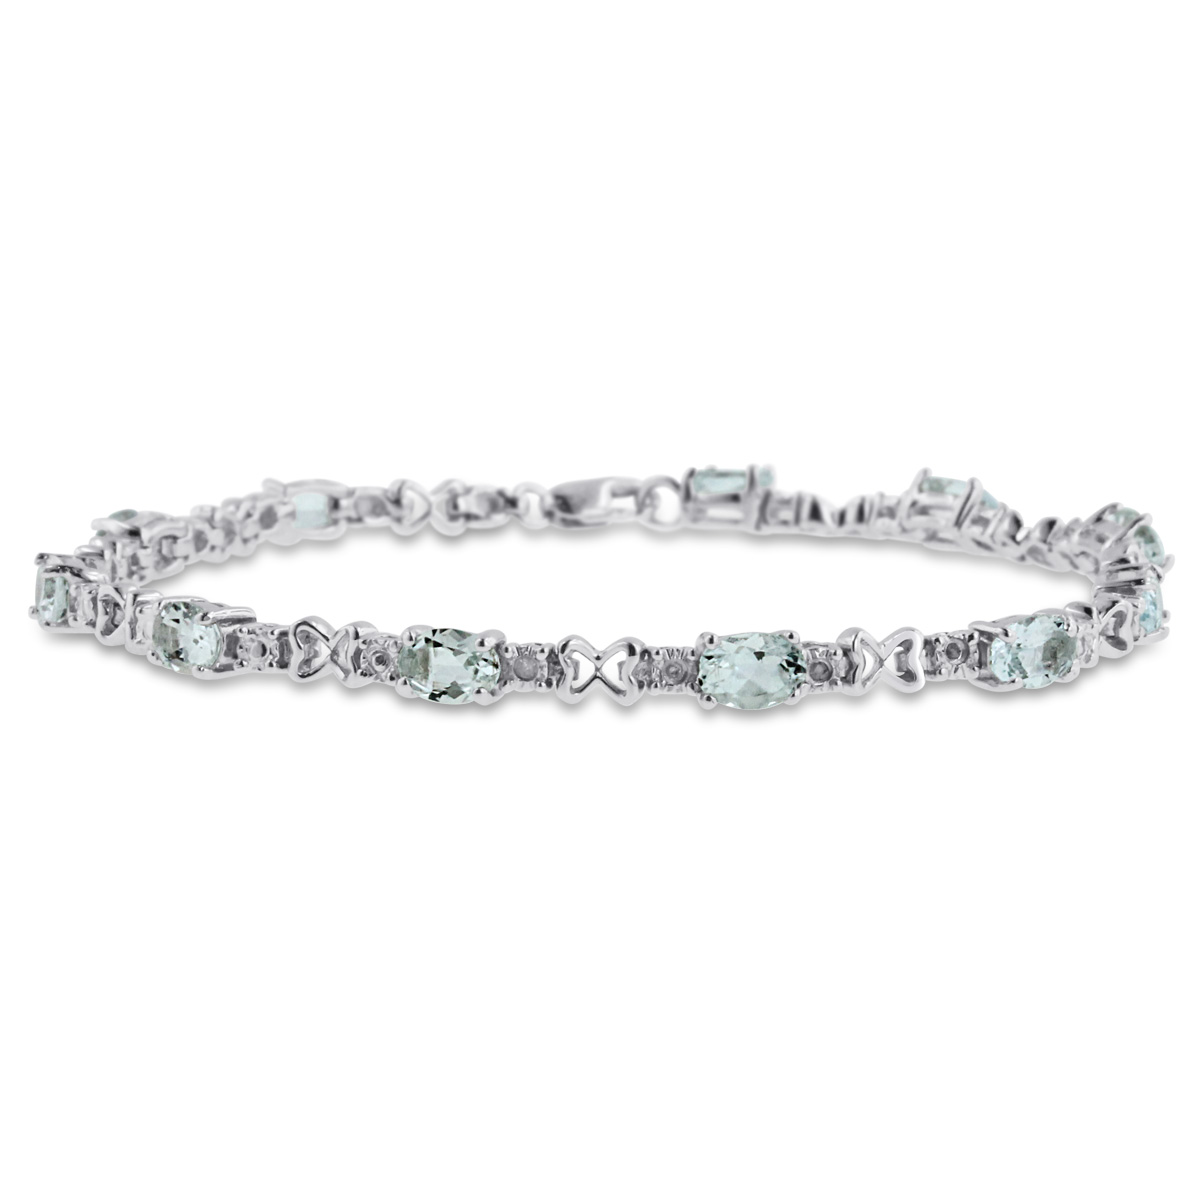 4 1 4 Carat Aquamarine and Diamond Bracelet in Sterling Silver 7 inches by SuperJeweler